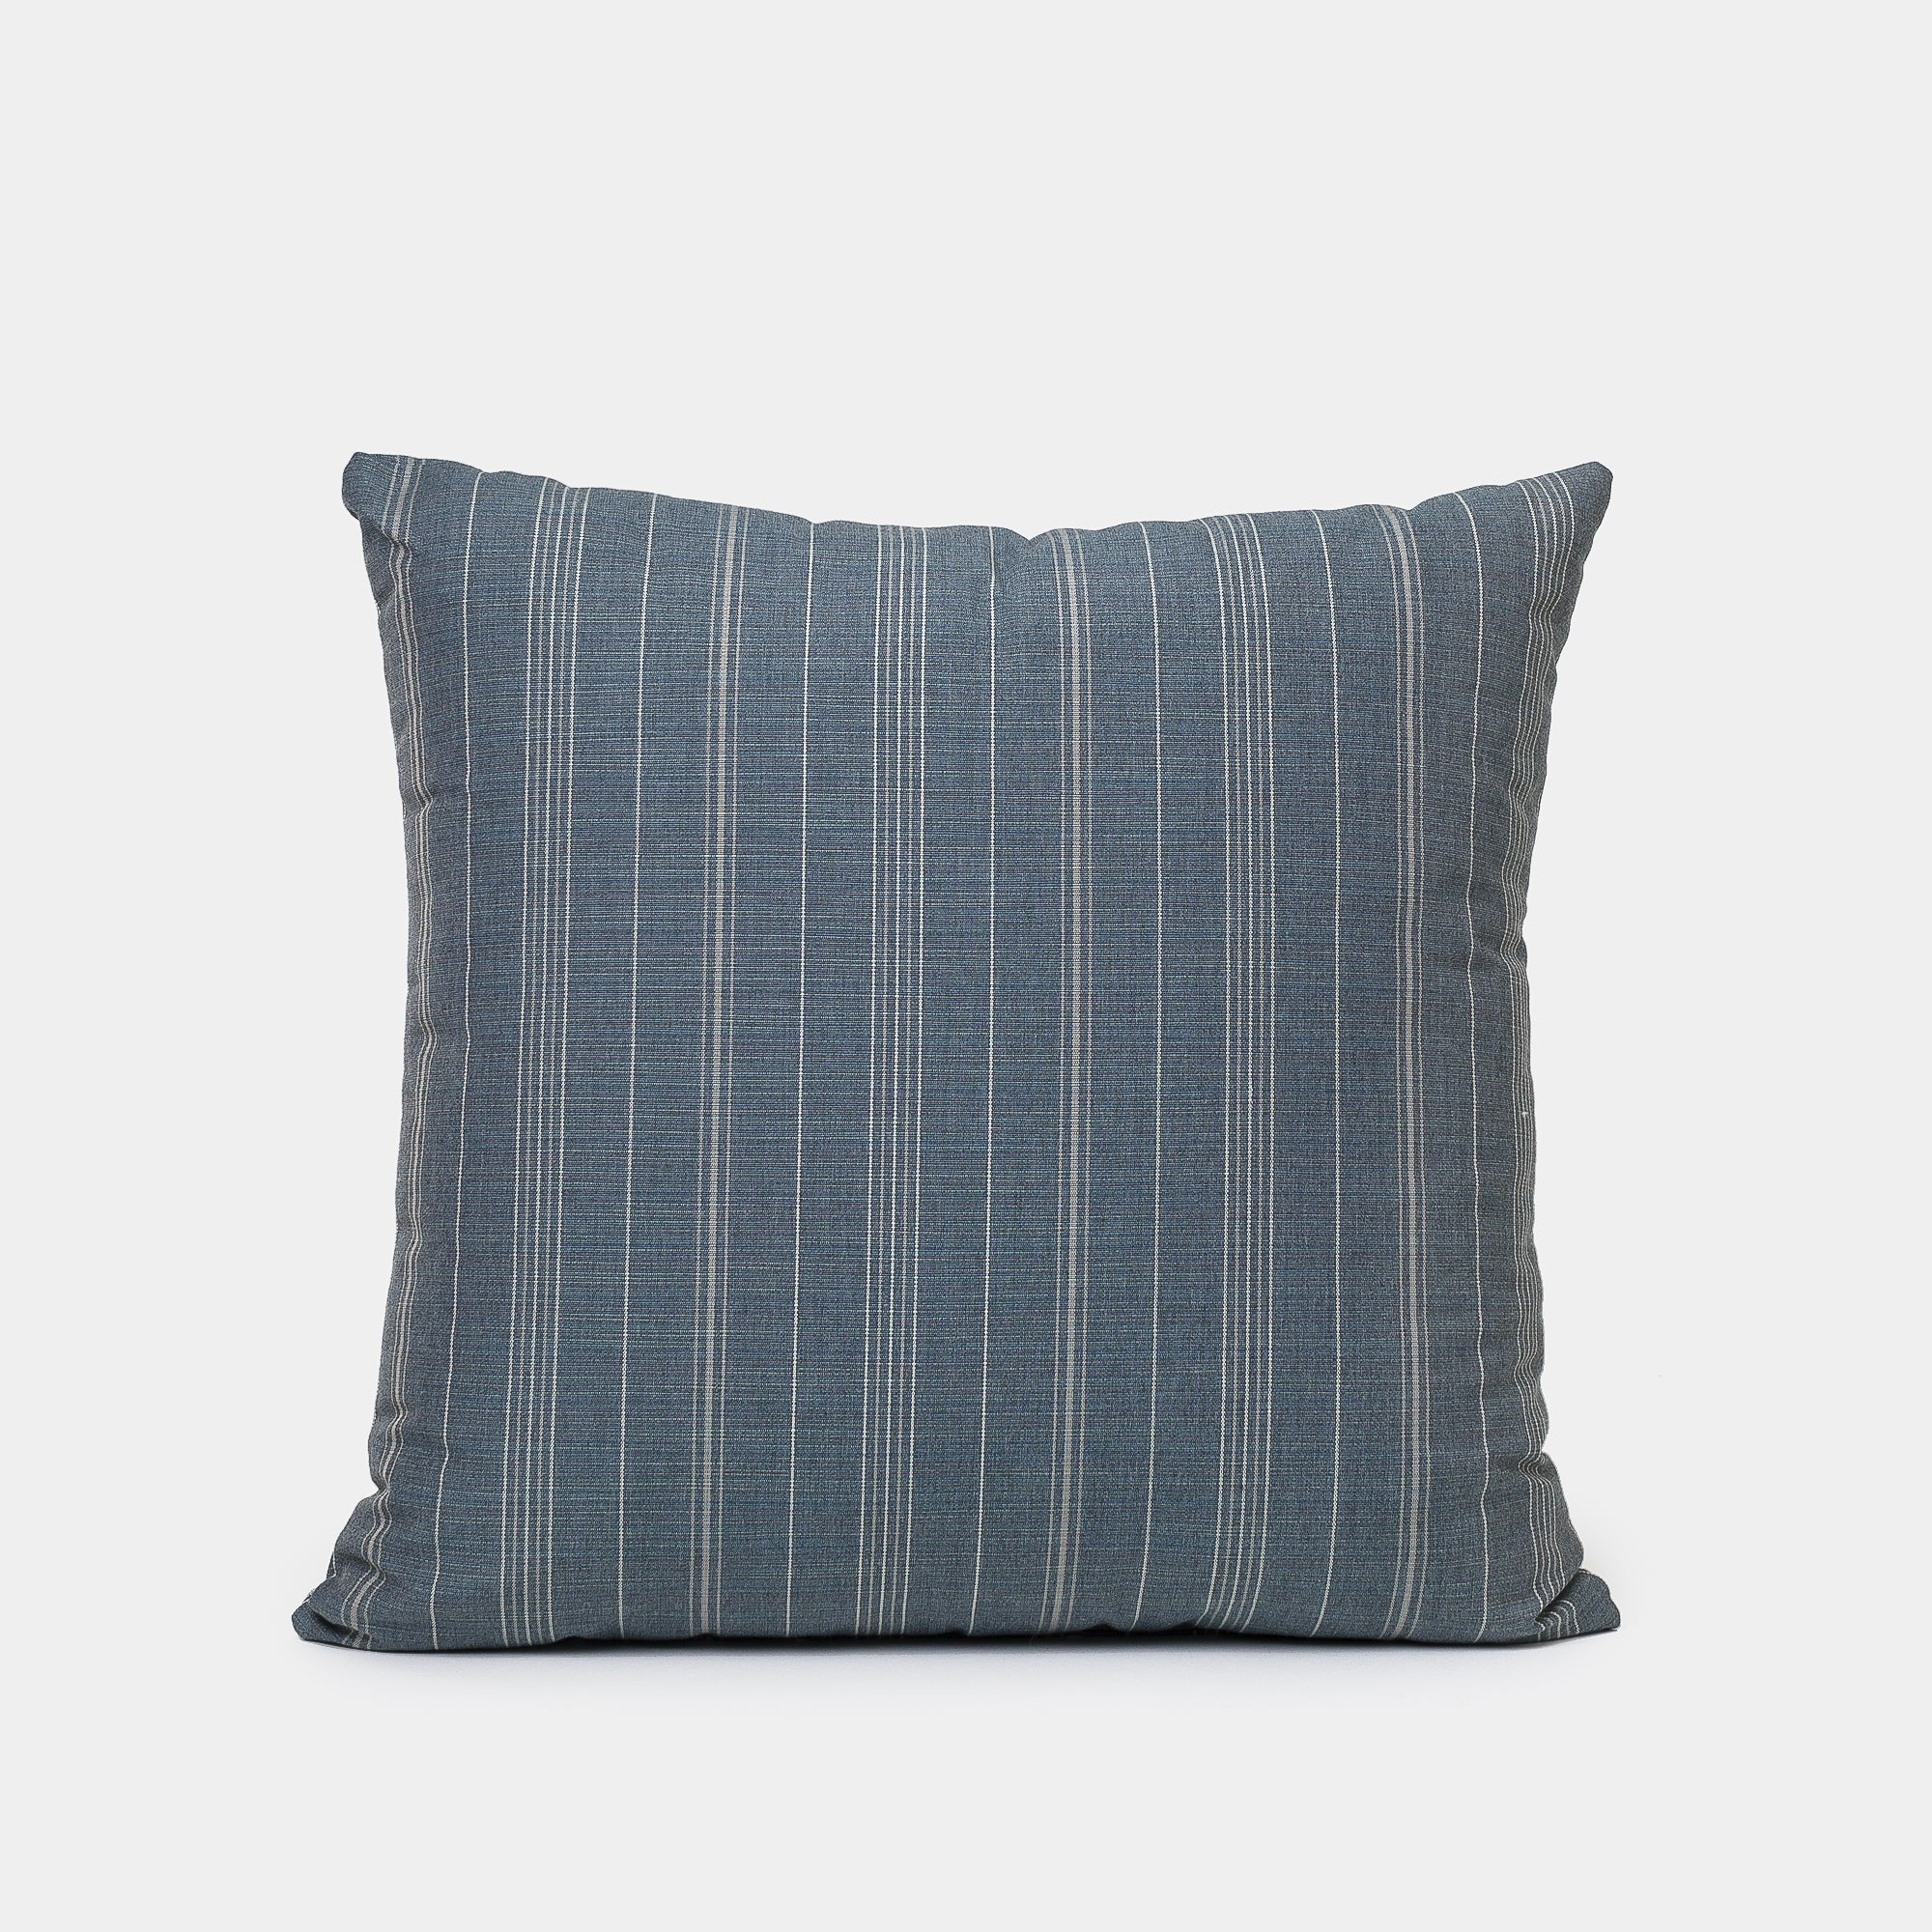 Sutton Stripe Pillow in Gunmetal - Pillows - Designer – Shoppe Amber Interiors